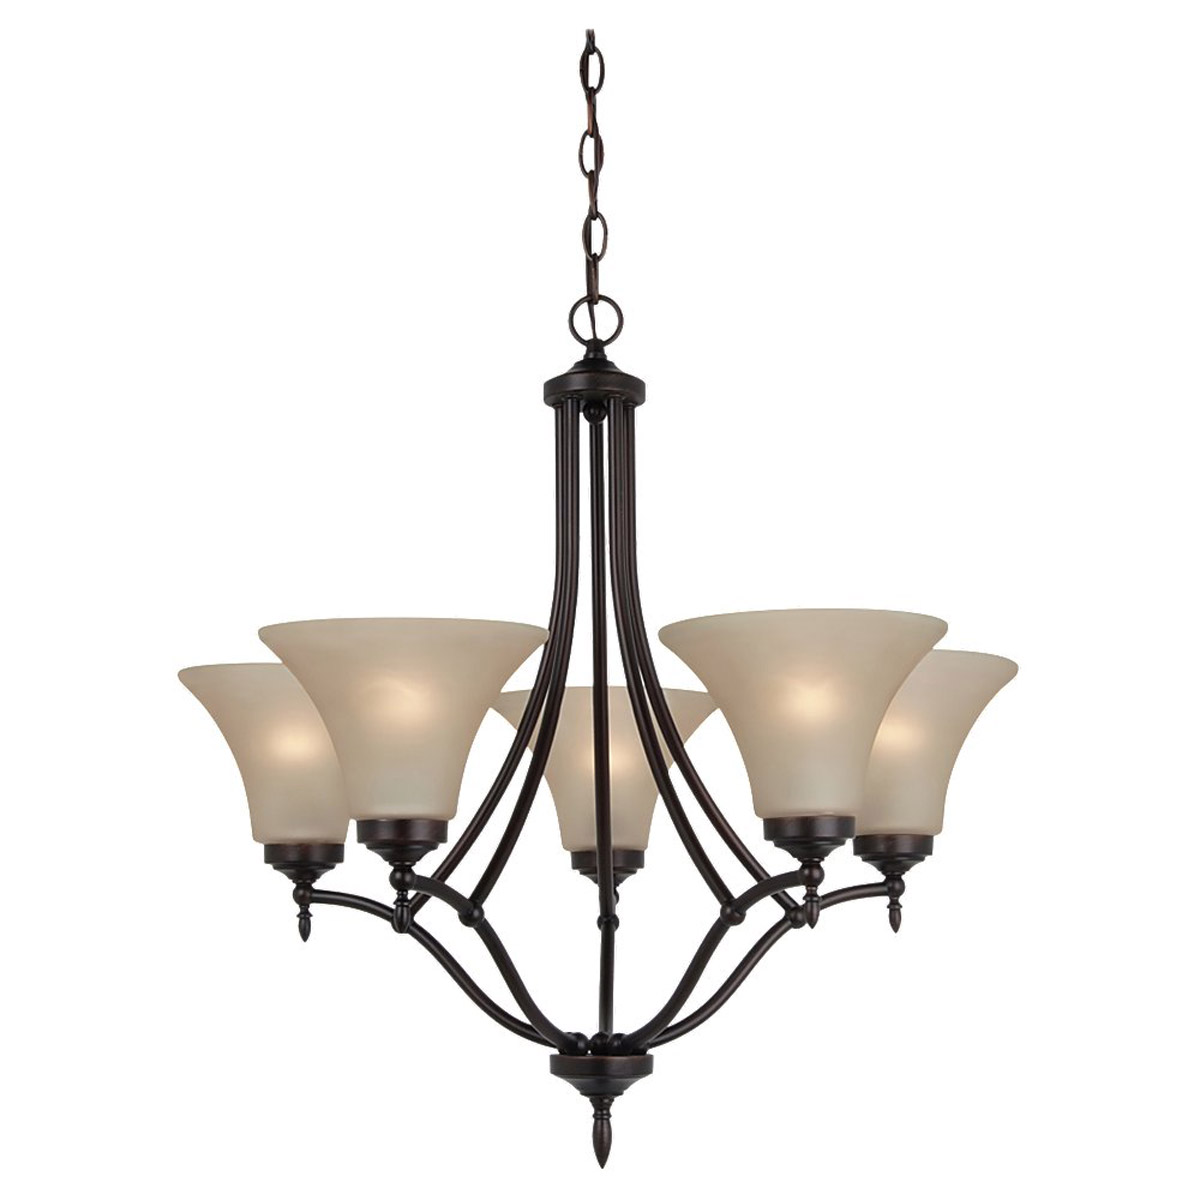 Sea Gull Lighting Montreal 5 Light Chandelier in Burnt Sienna 31181-710 photo